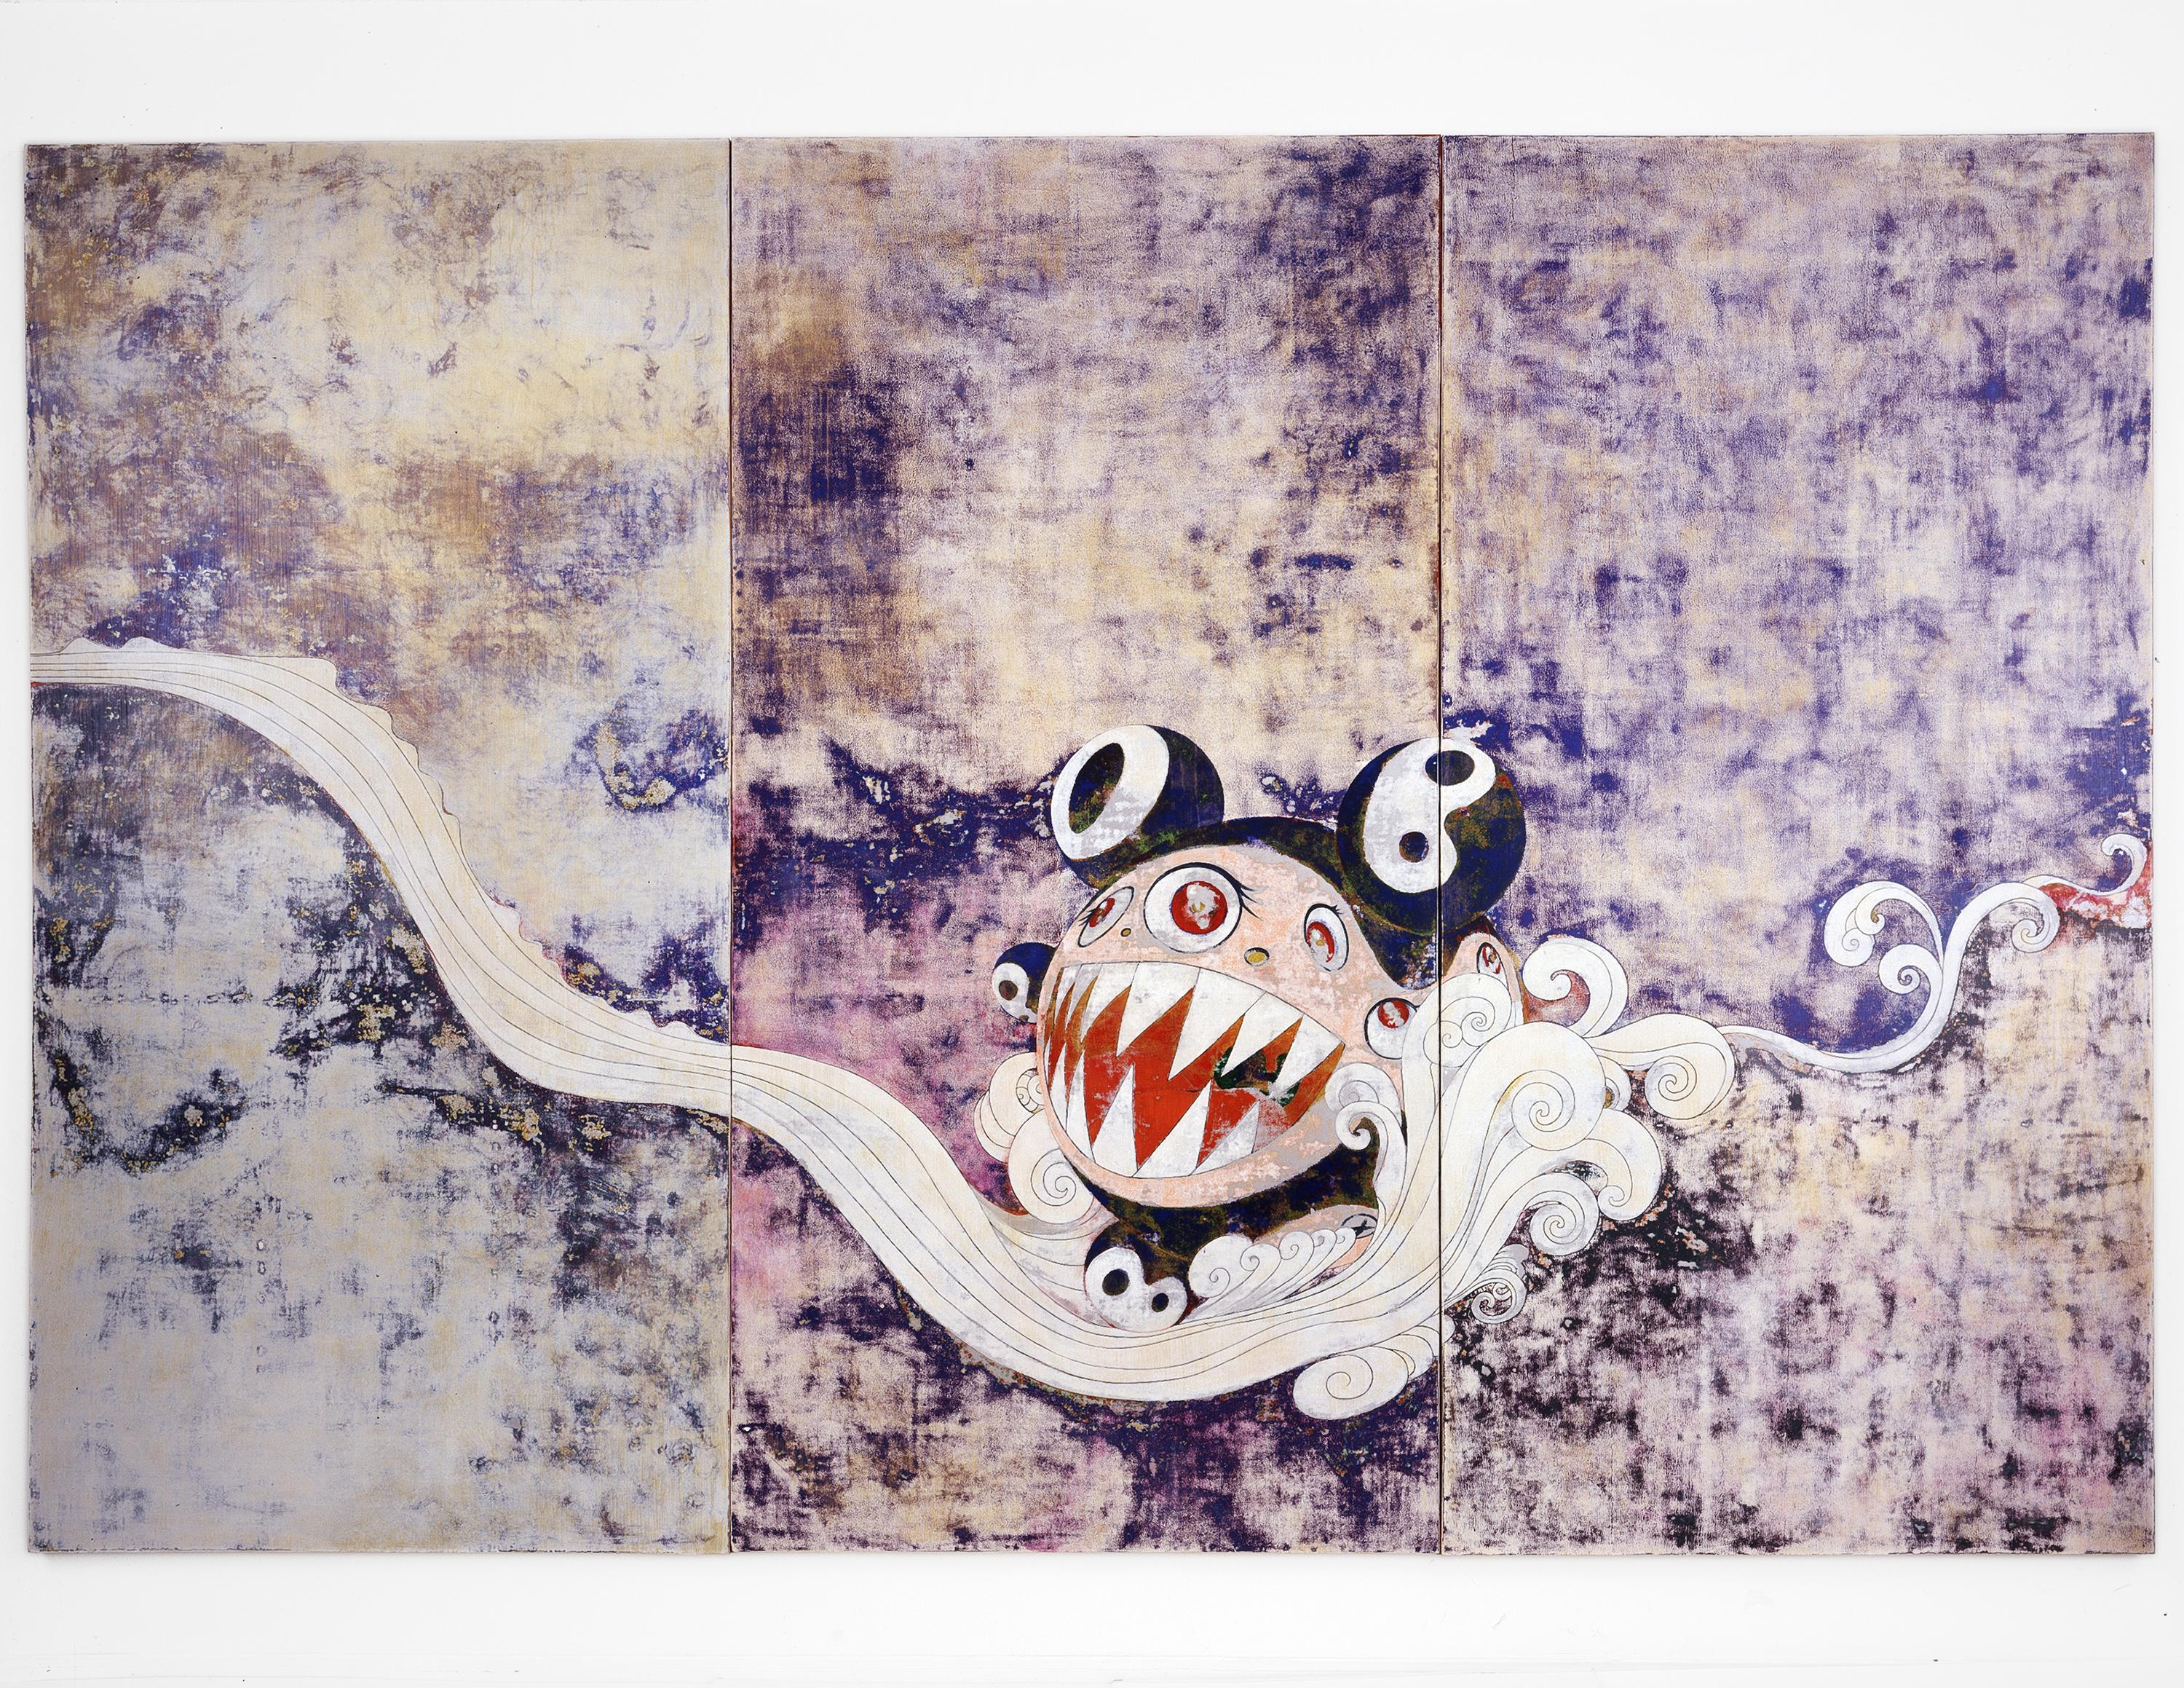 A horizontal expanse of abraded blues, purples, and beige, across which a stylized white stream meanders. A red, white and blue bulbous creature wtih jagged white teeth and resembling Mickey Mouse appears to ride the currents of the stream.